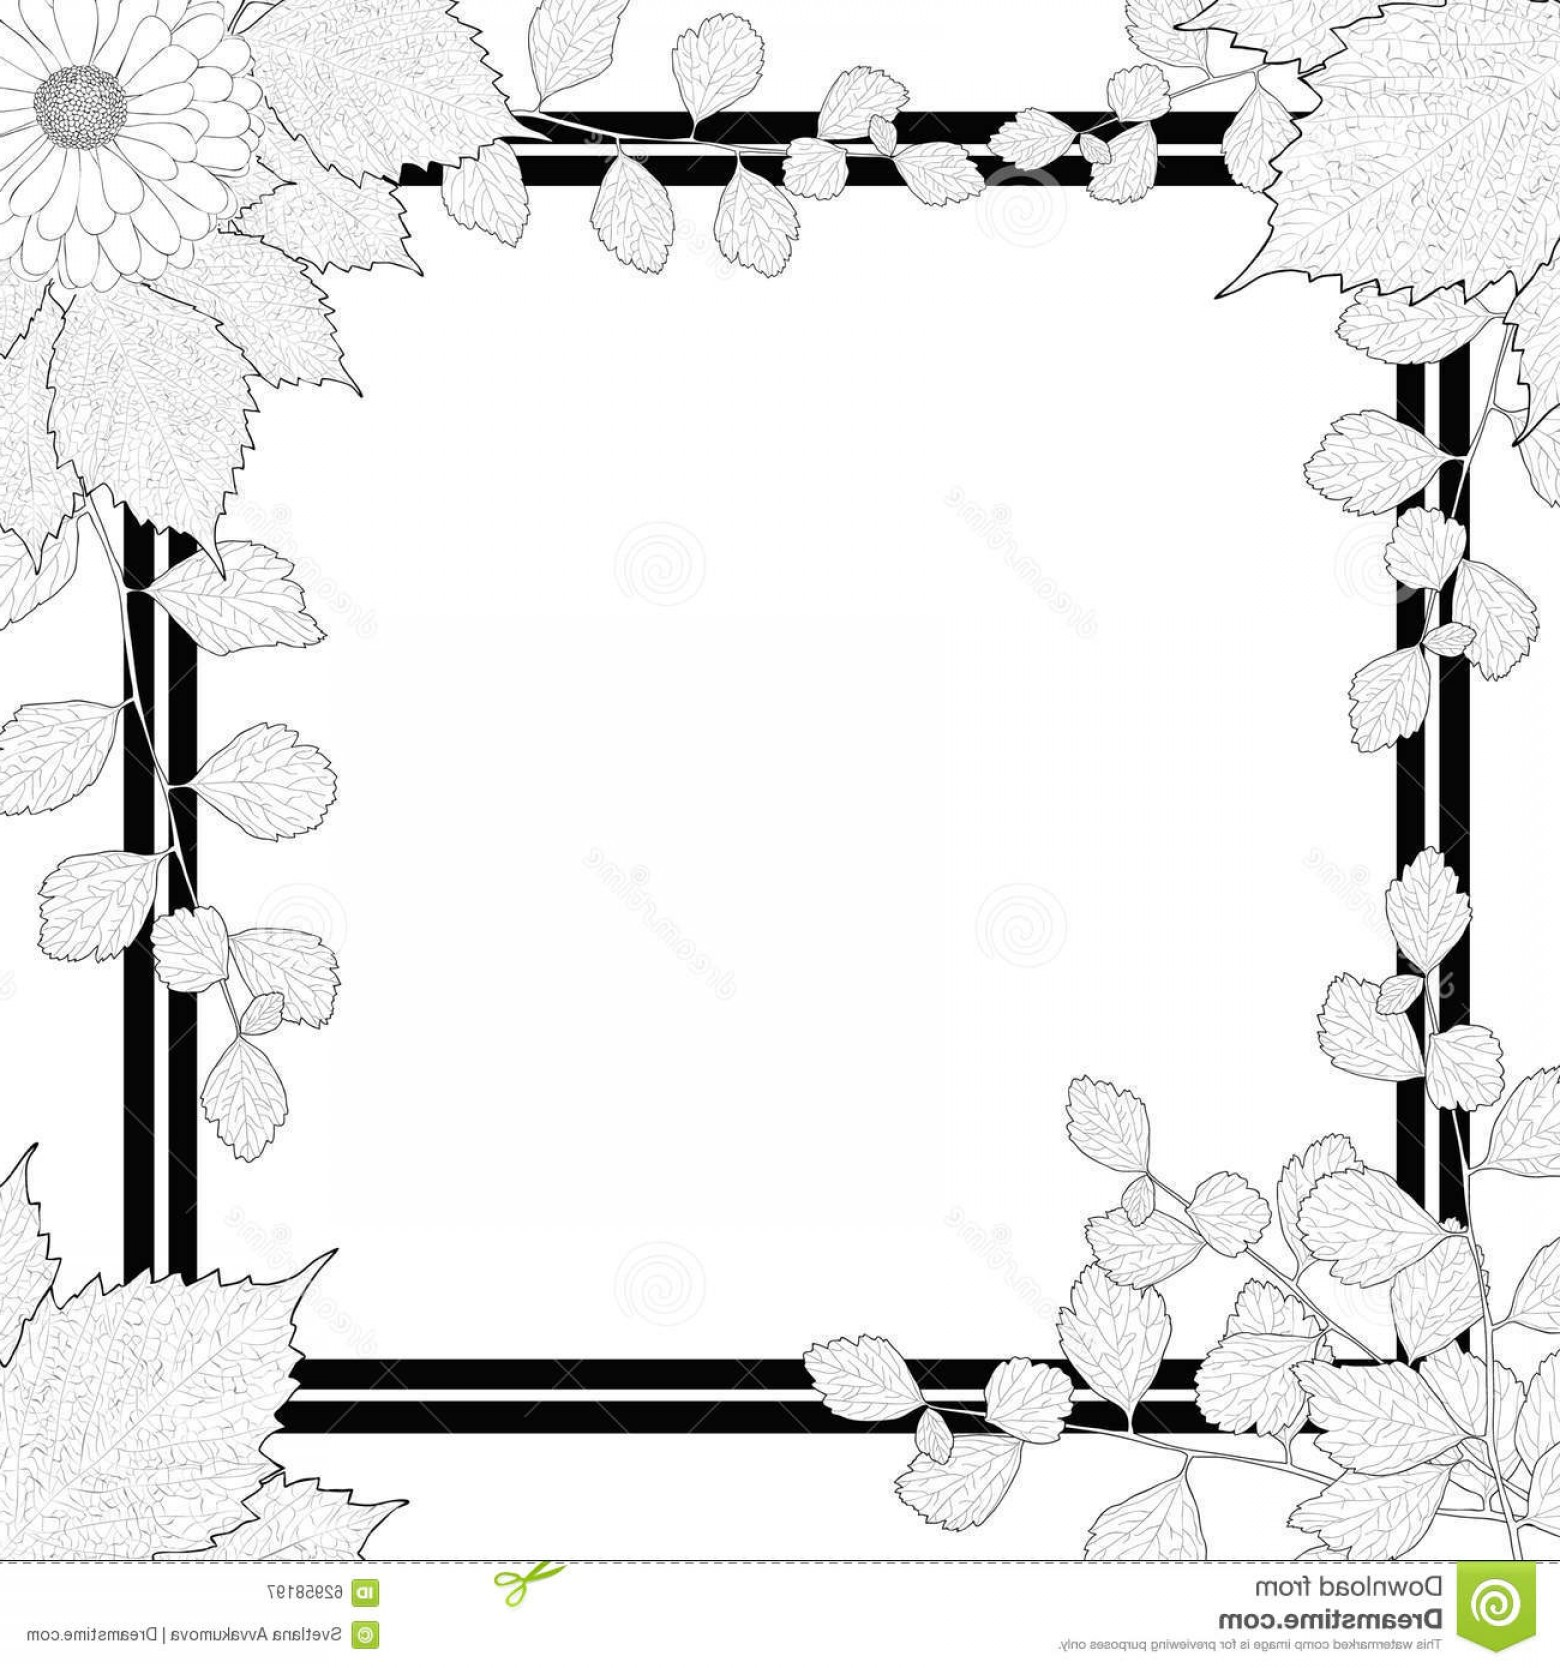 Square Black Vector Border Frame: Stock Illustration Nature Frame Black White Branches Leaves Flower Hand Drawn Light Background Square Border Vector Illustration Image